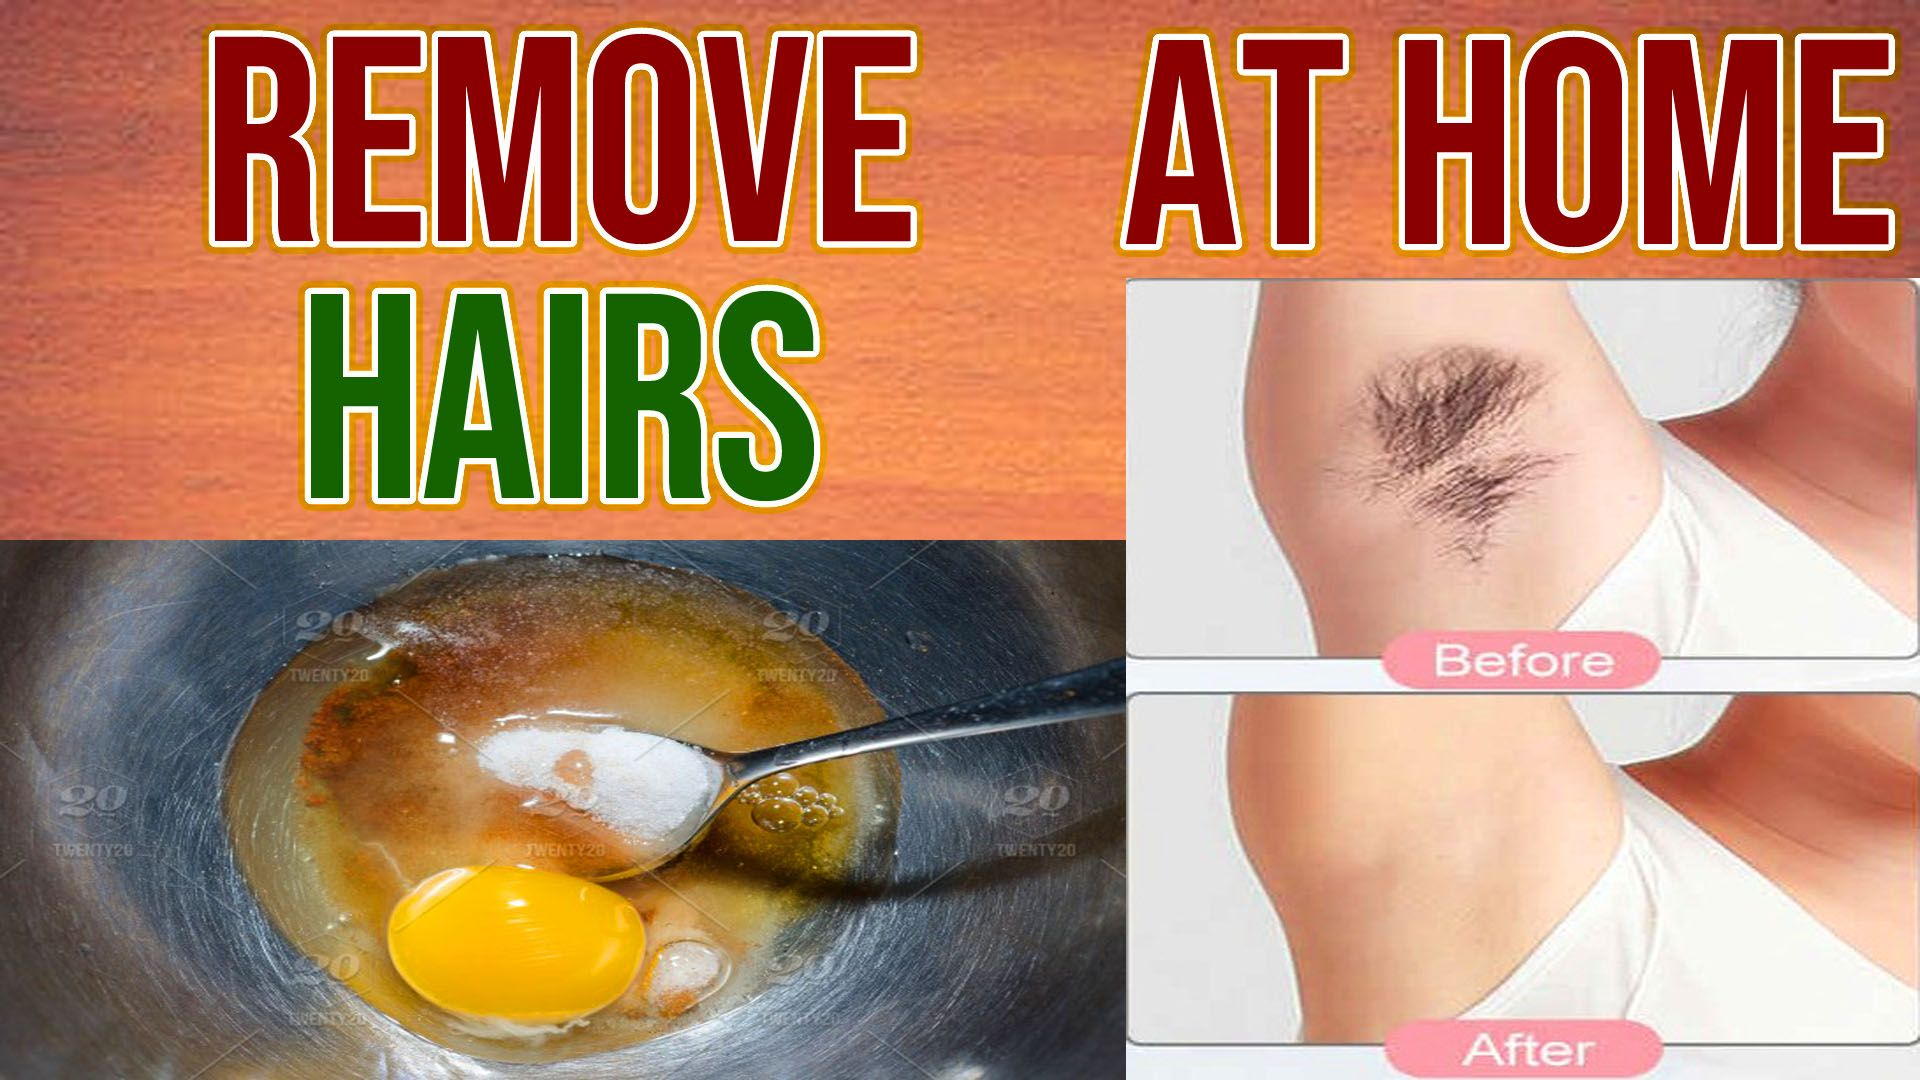 How To Remove Unwanted Hair Permanently With Home Remedies In Urdu Hindi Youth Health Tips In 2020 Unwanted Hair Removal Unwanted Hair Permanently Health Tips